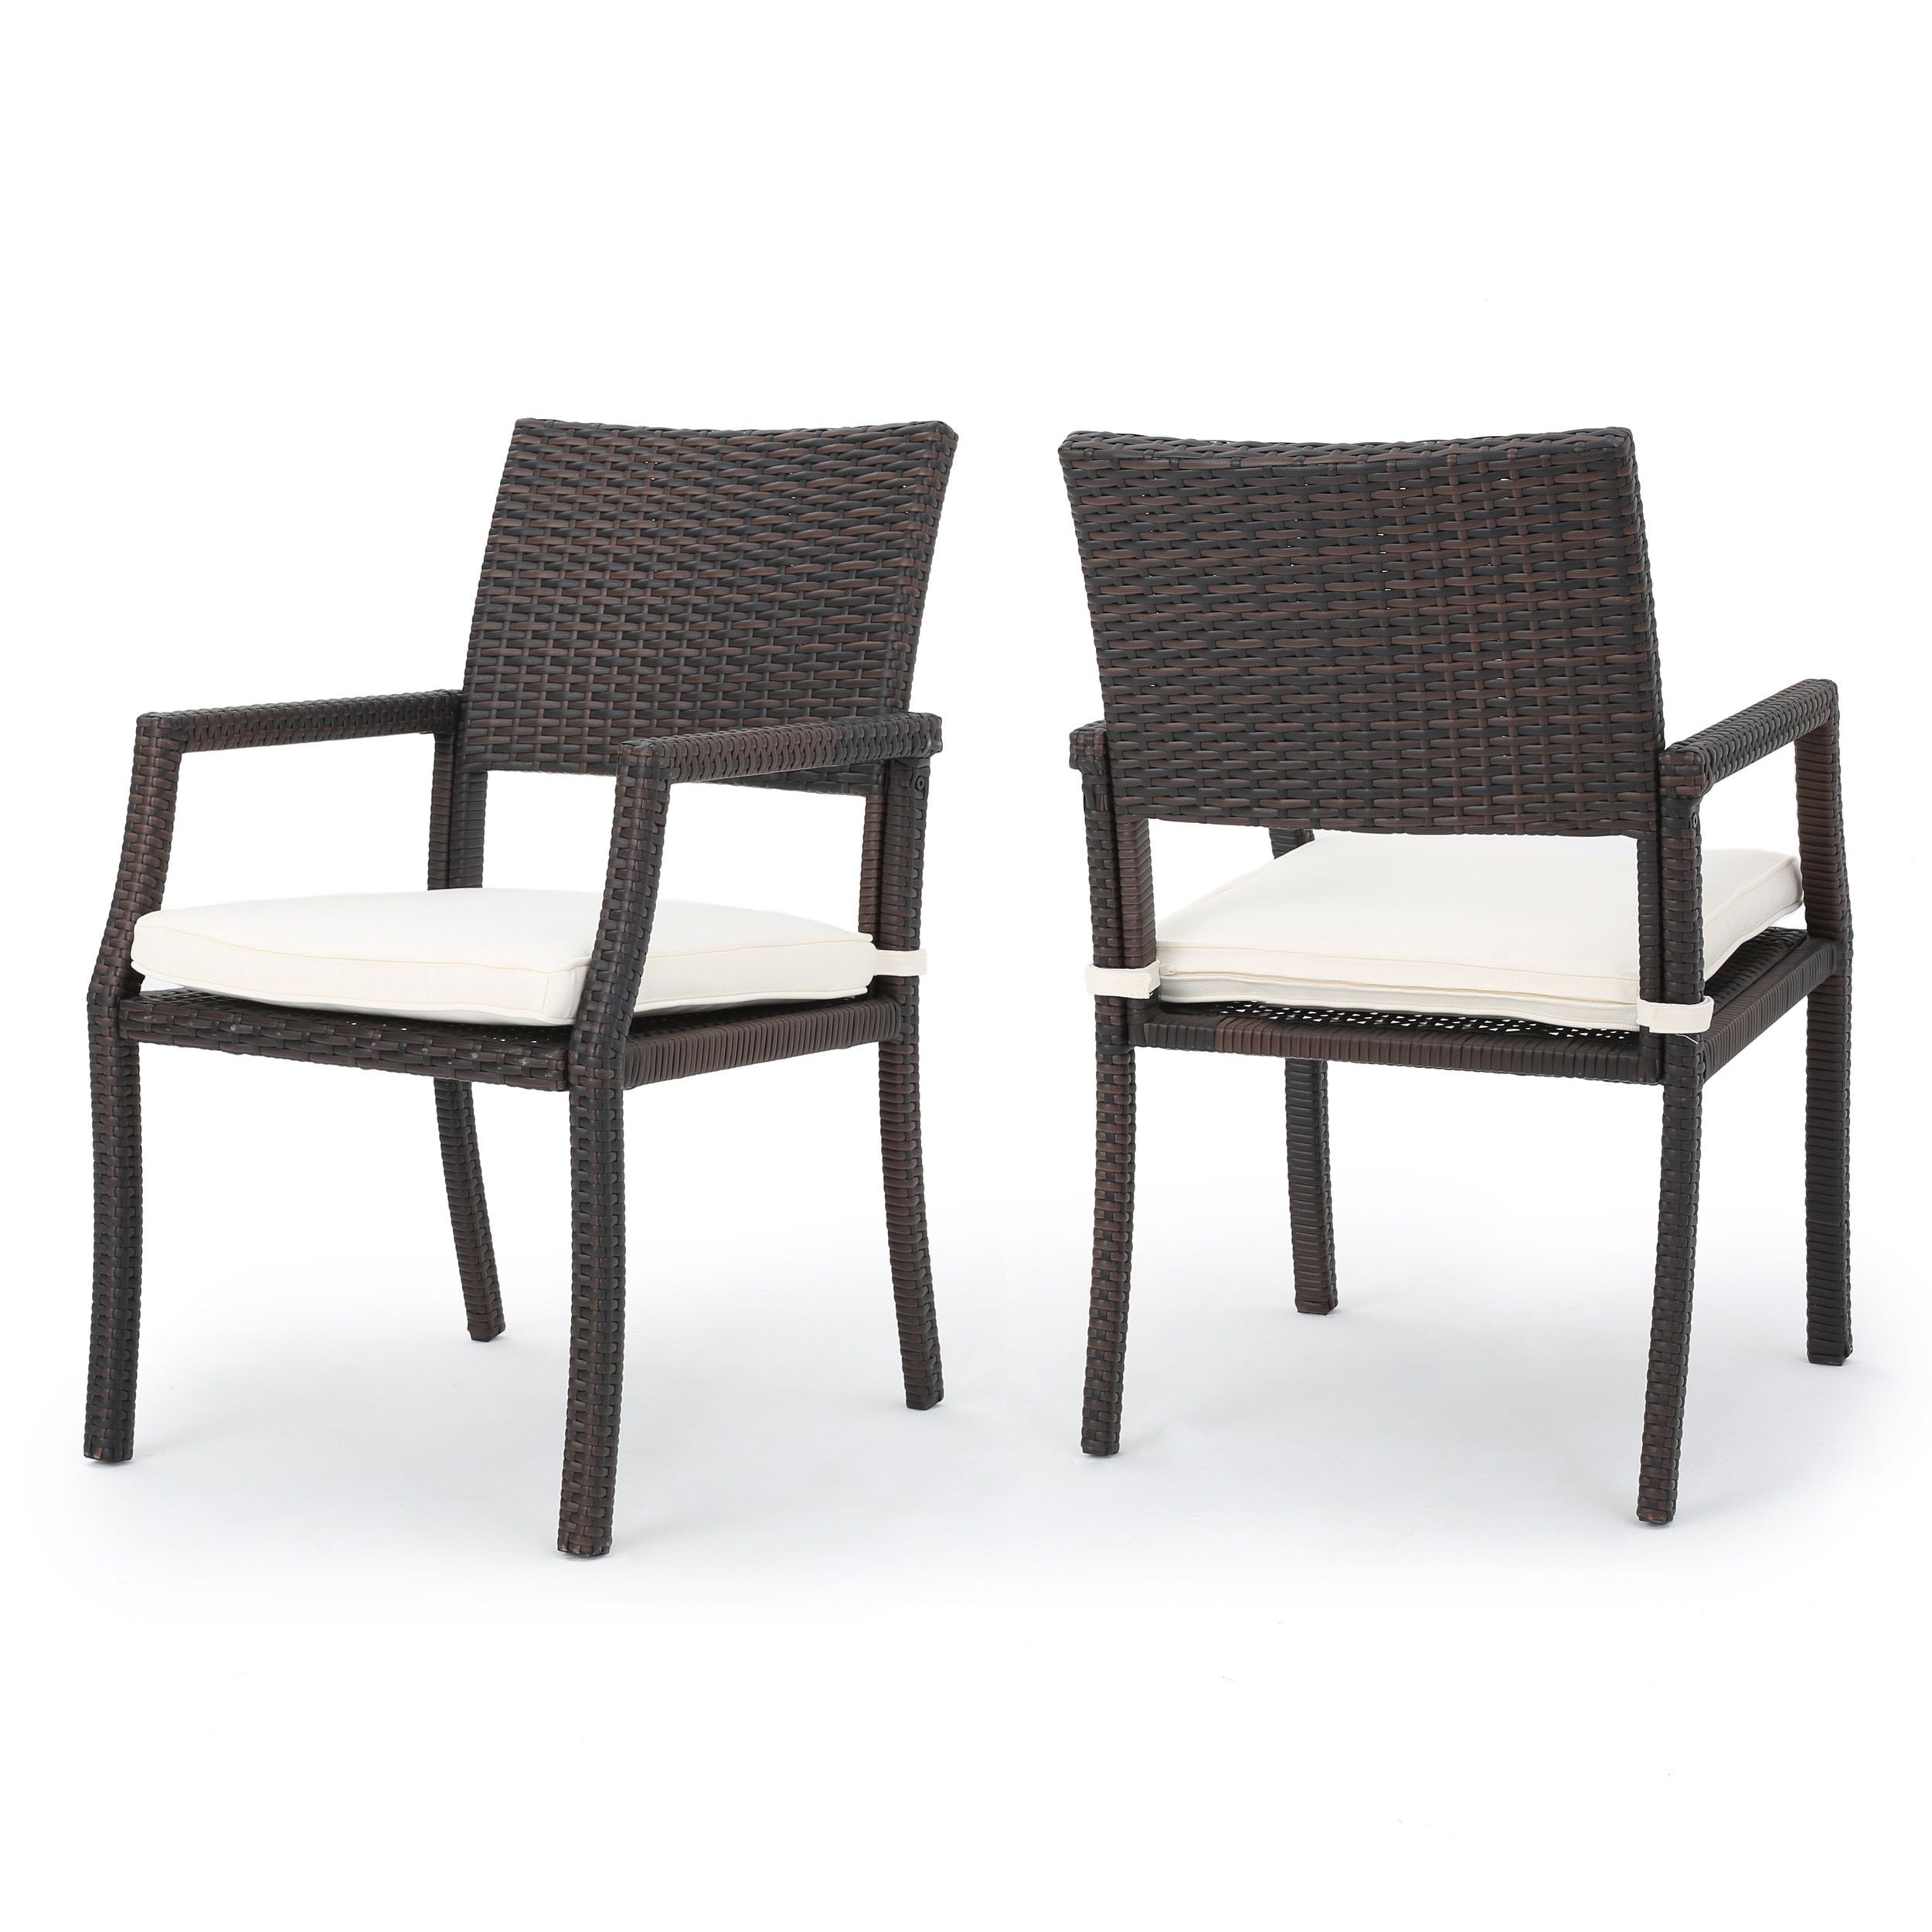 Rhode Island Outdoor Wicker Dining Chair Chair with Cushion (Set ...